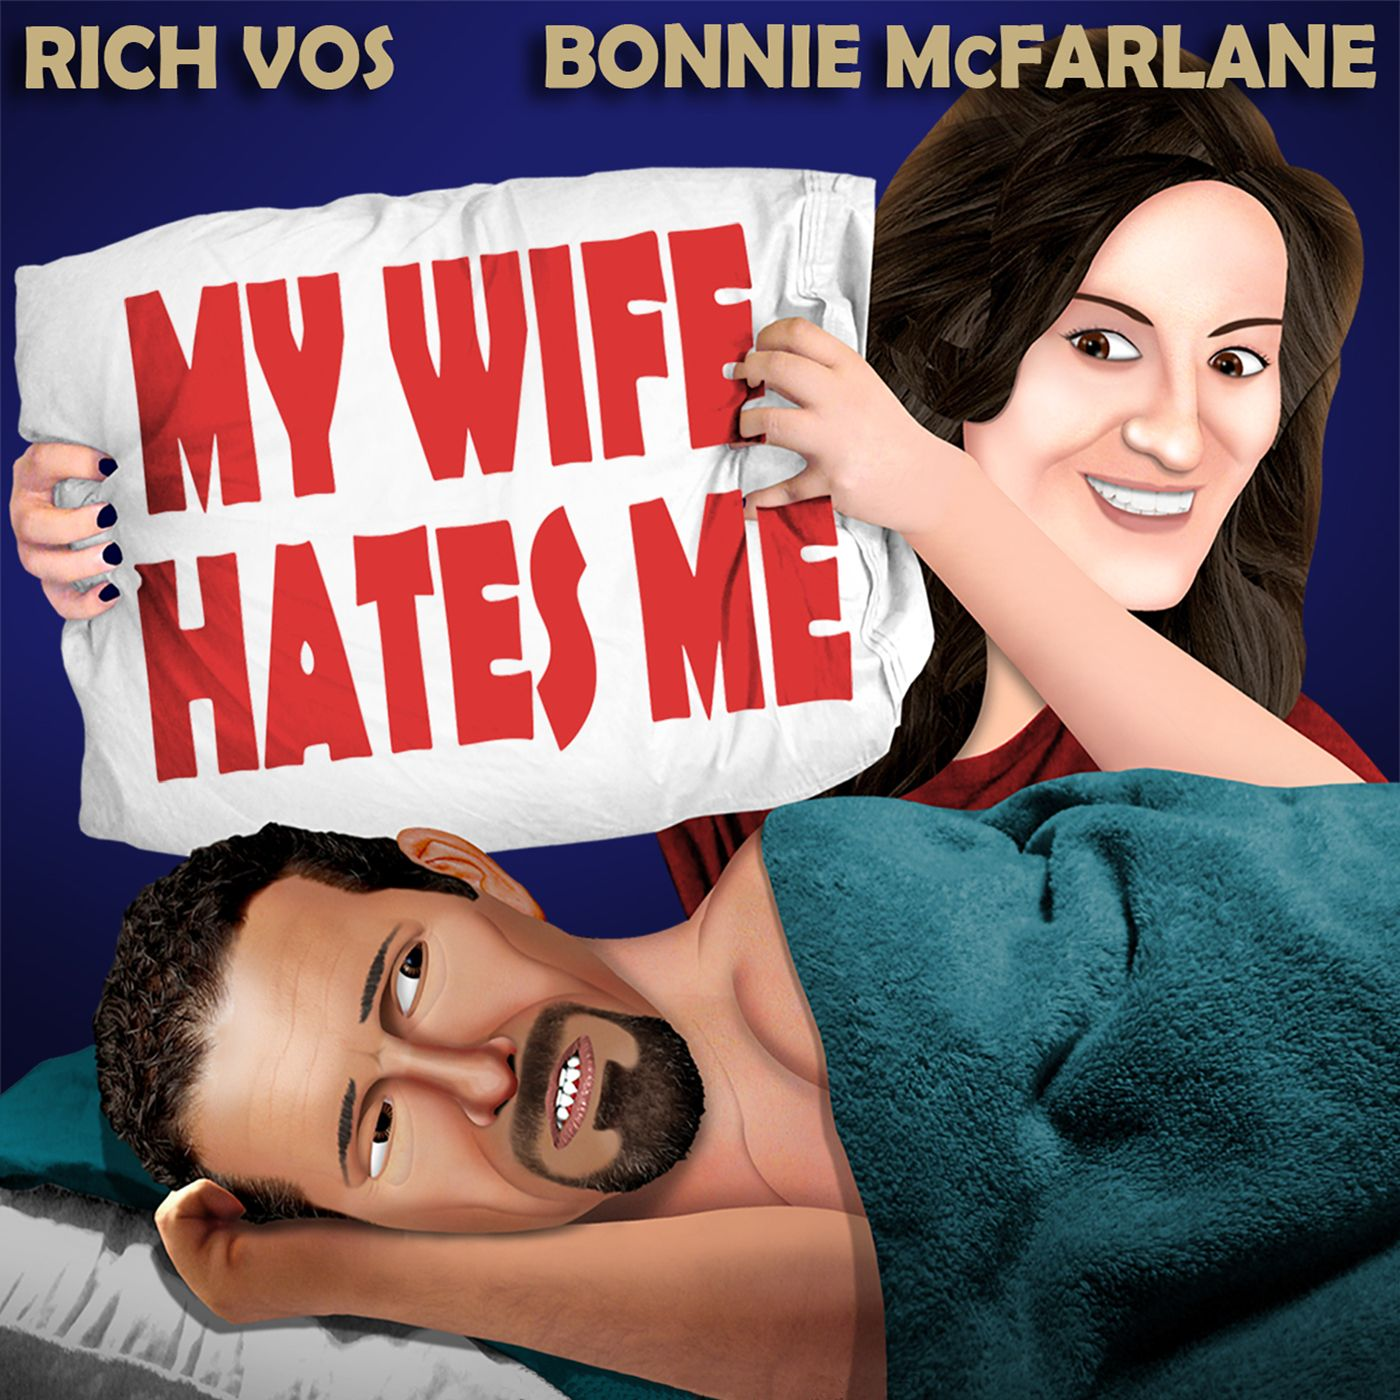 363 Hoochie Mama By Vos And Bonnie S My Wife Hates Me Podchaser Listen to music from hoochie mama like when you gonna find me a wife, 2 live crew & more. podchaser